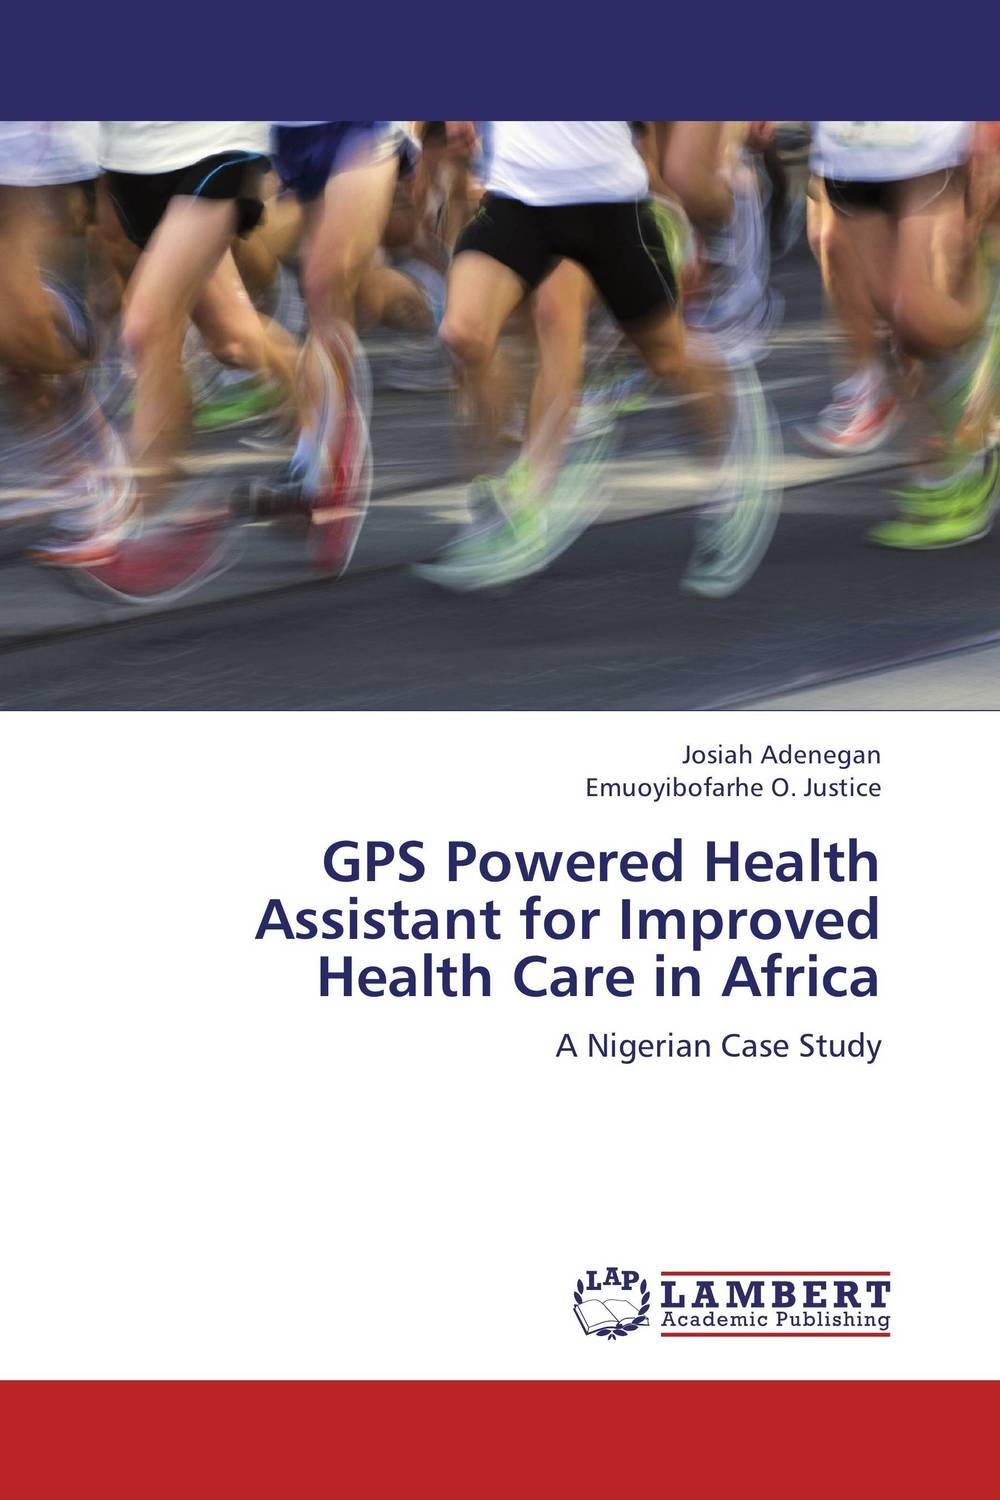 GPS Powered Health Assistant for Improved Health Care in Africa prostate health devices is prostate removal prostatitis mainly for the prostate health and prostatitis health capsule